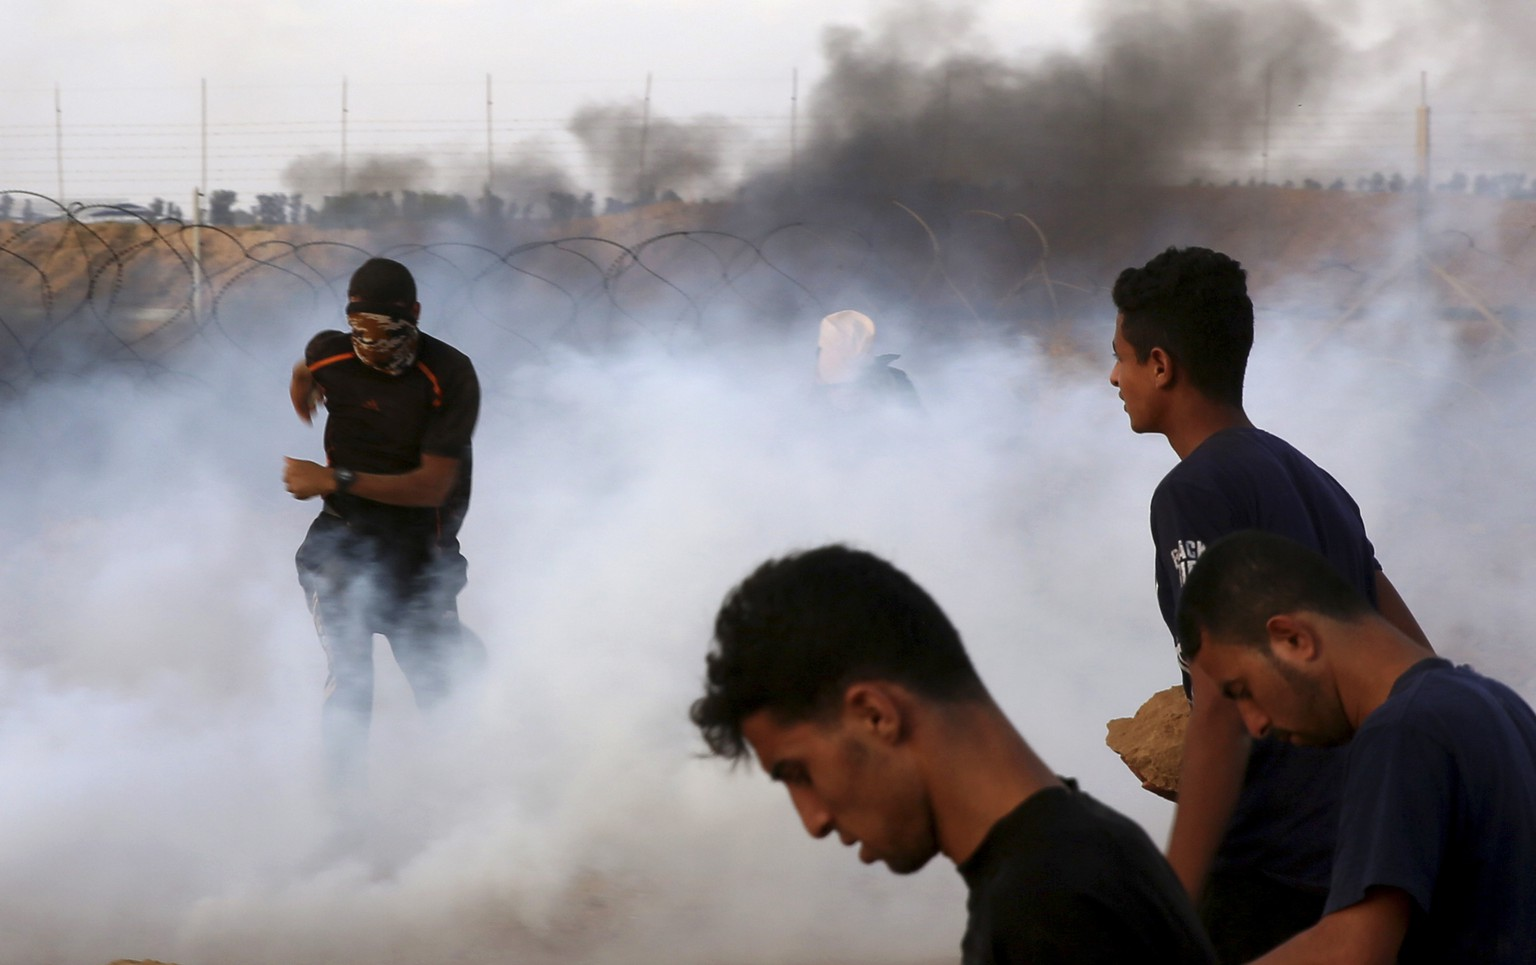 Protesters run for cover from teargas fired by Israeli troops near fence of the Gaza Strip border with Israel, during a protest east of Khan Younis, southern Gaza Strip, Friday, July 20, 2018. Israel targeted Hamas positions in Gaza, killing four Palestinians on Friday in a series of air strikes after gunmen shot at soldiers near the border, officials said. (AP Photo/Adel Hana)